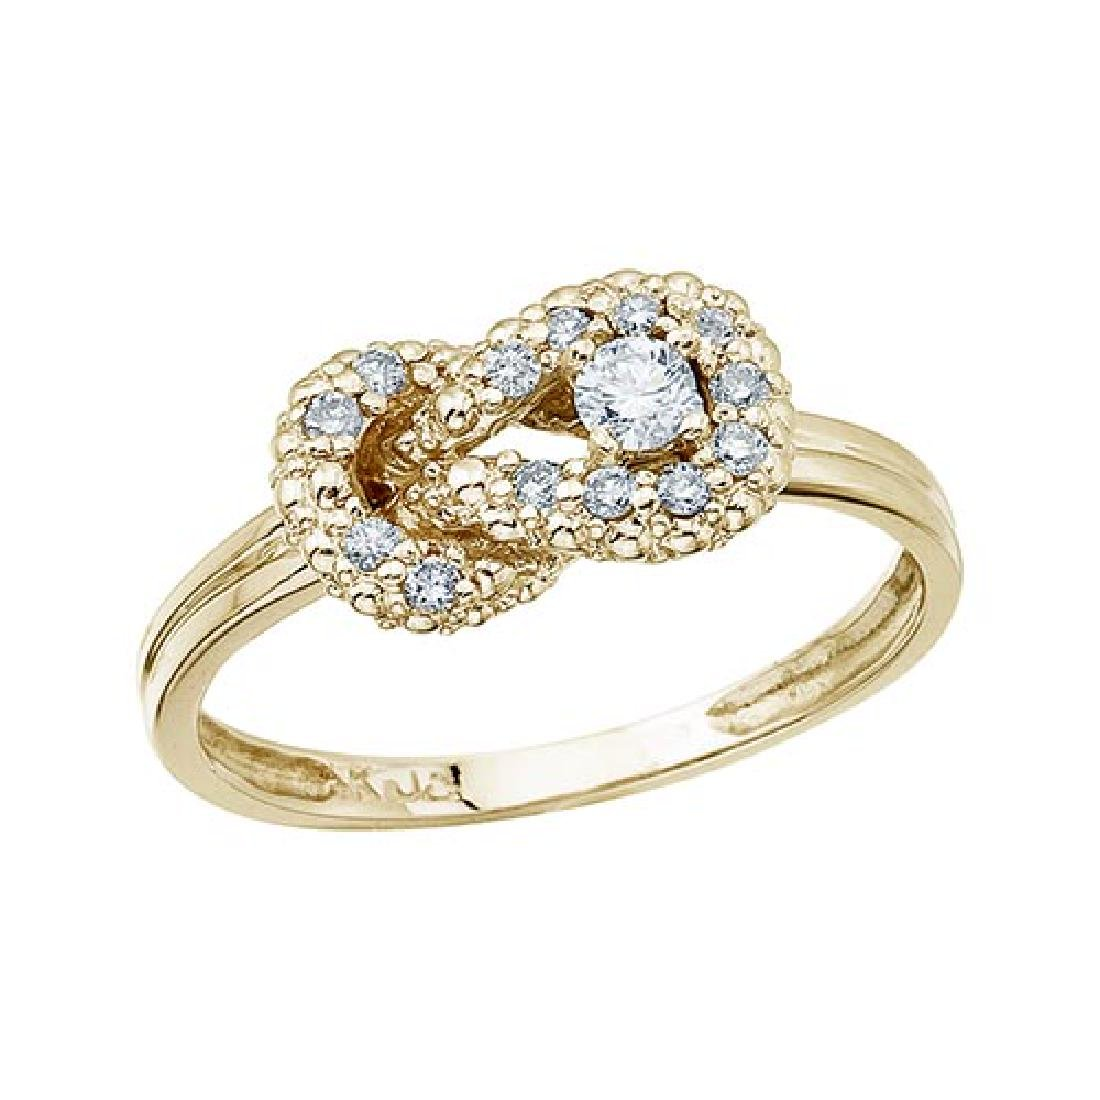 Certified 14K Yellow Gold Fashion Knot Diamond Ring